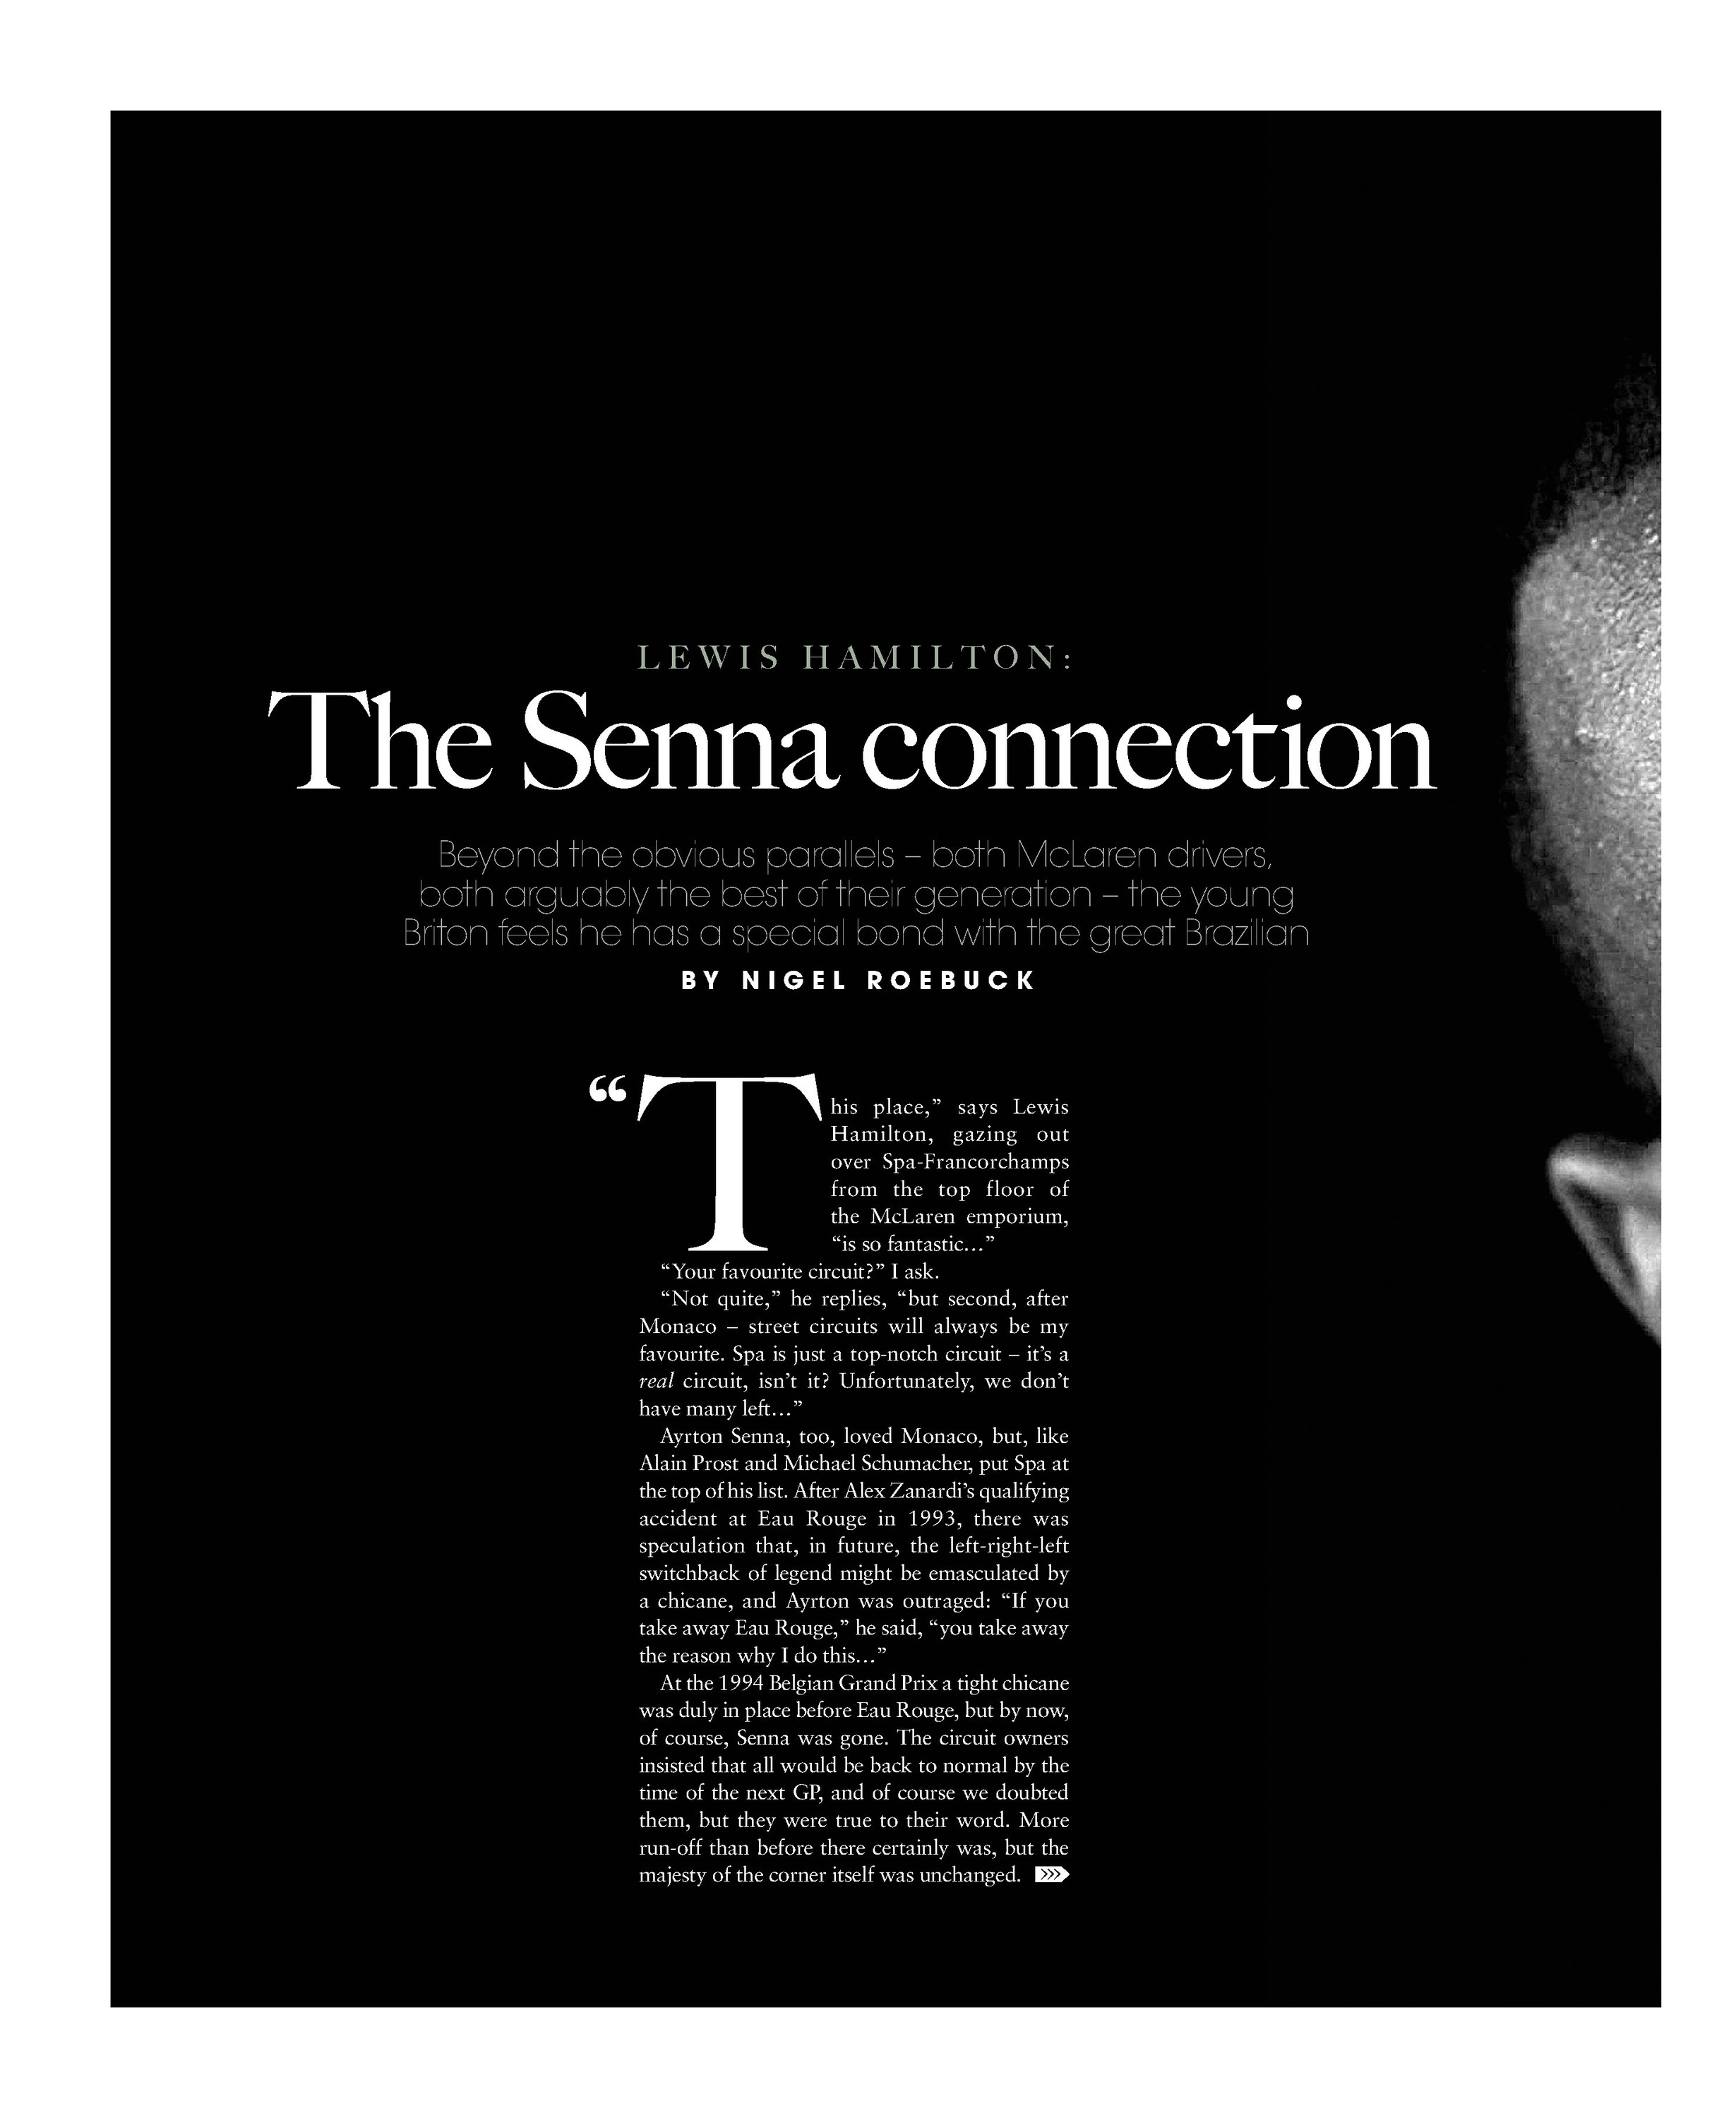 Lewis Hamilton: The Senna connection image